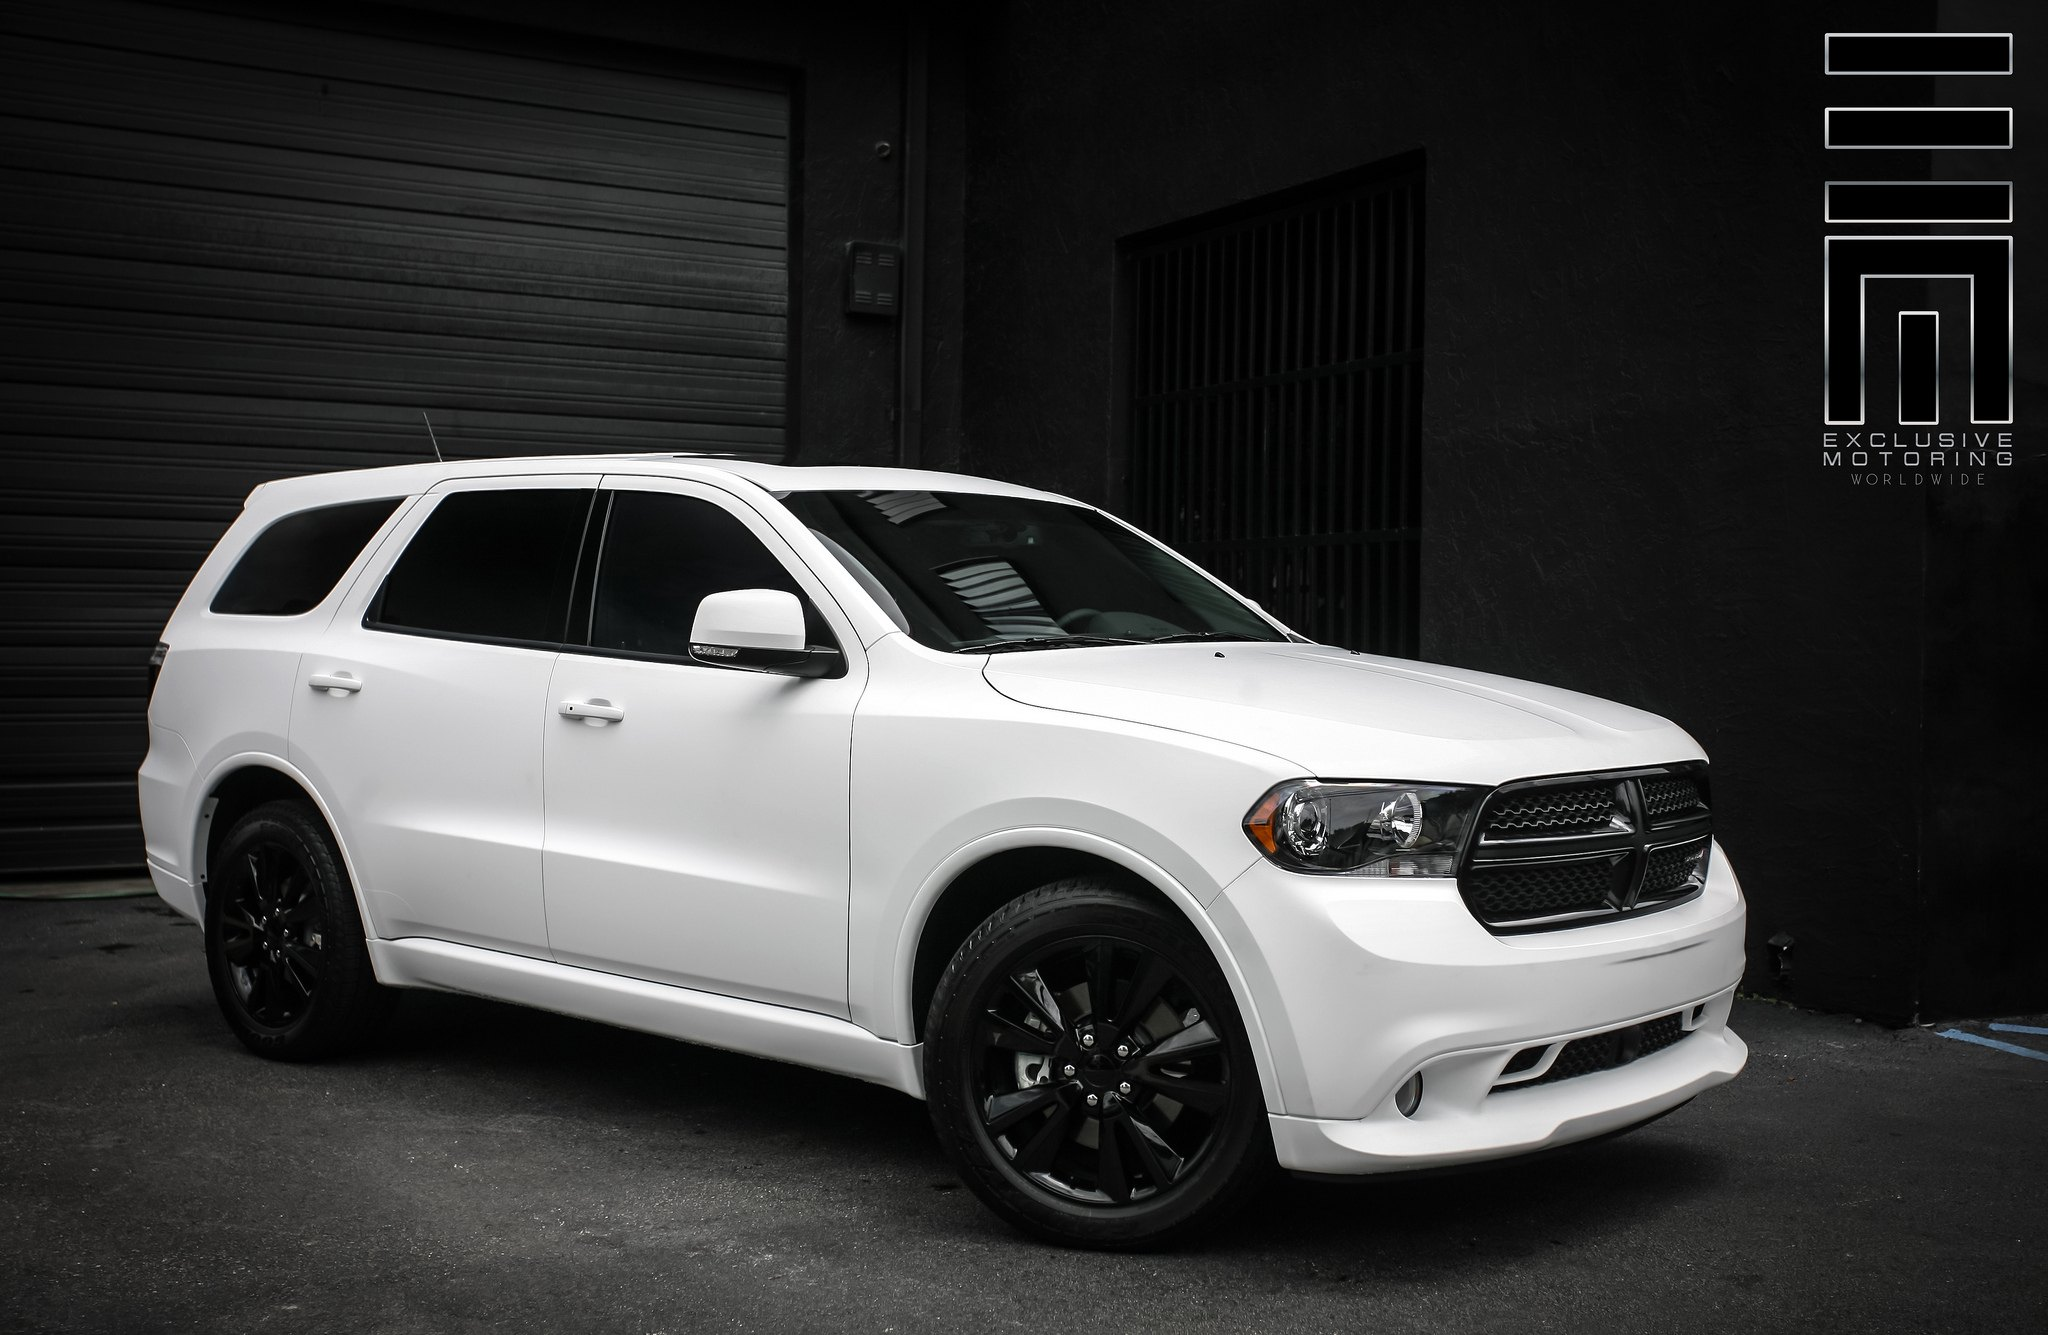 snow white dodge durango r t by exclusive motoring gallery. Black Bedroom Furniture Sets. Home Design Ideas